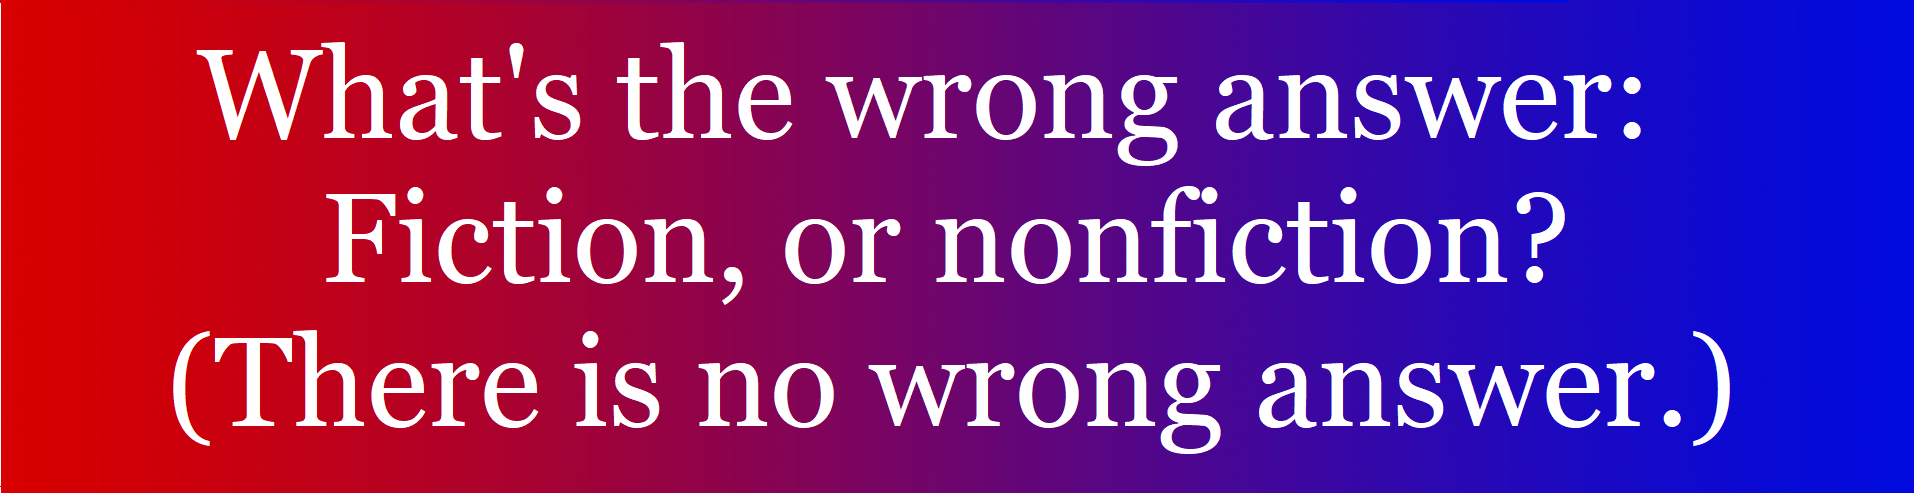 Red and blue ombre banner with text: What's the wrong answer: Fiction, or nonfiction? (There is no wrong answer.)